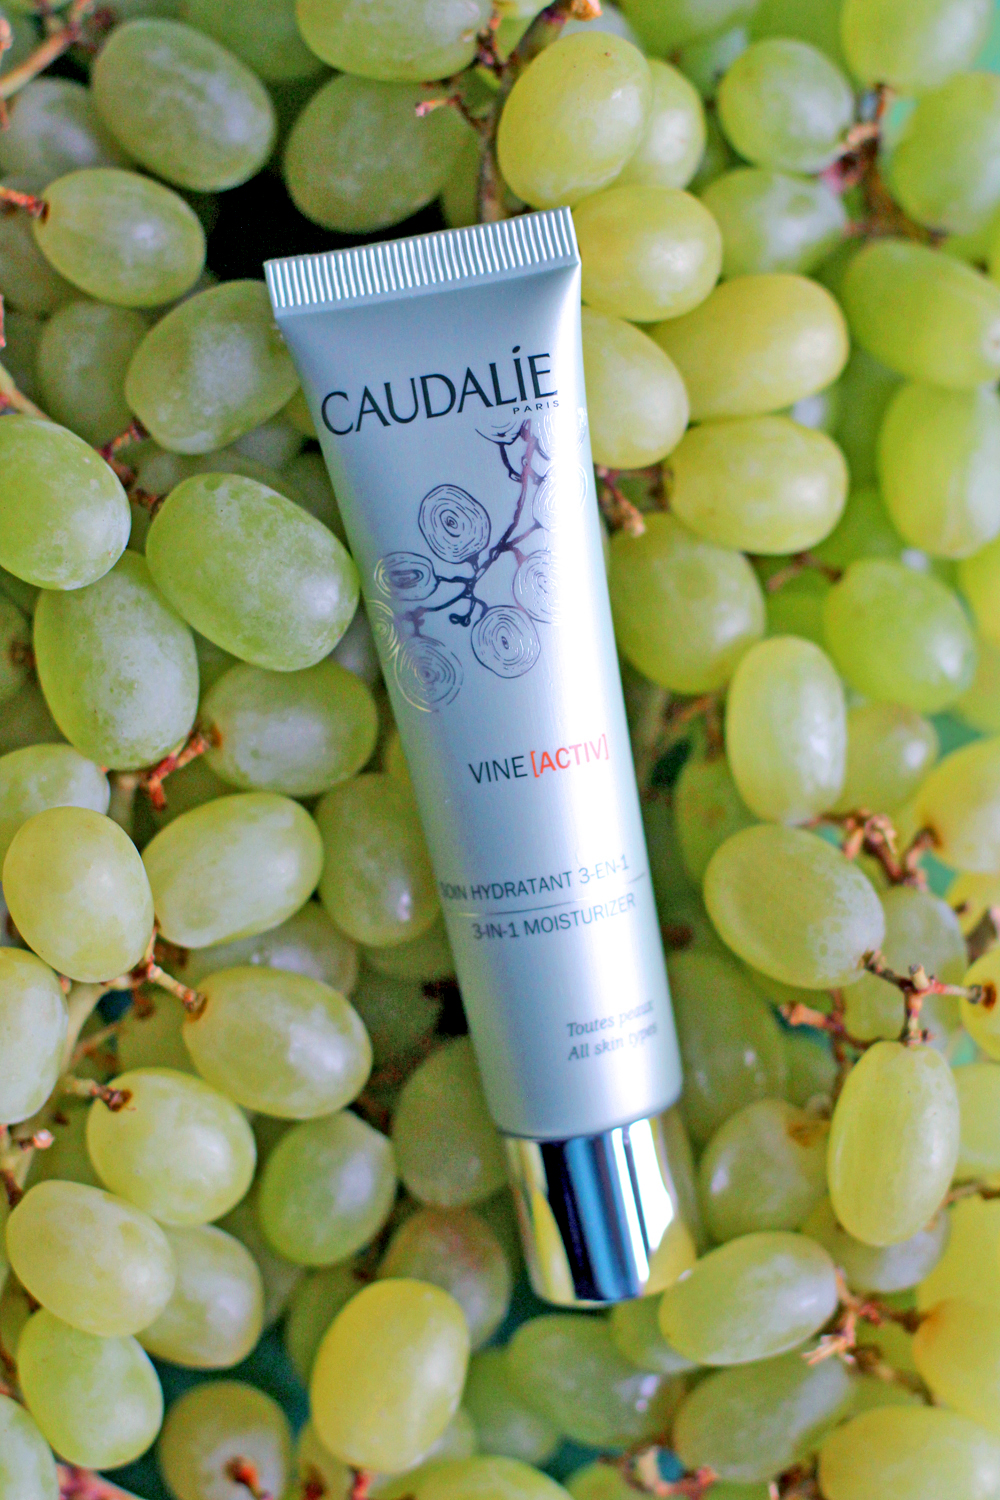 Caudalie Vine Active 3 in 1 Moisturizer - UK beauty blog